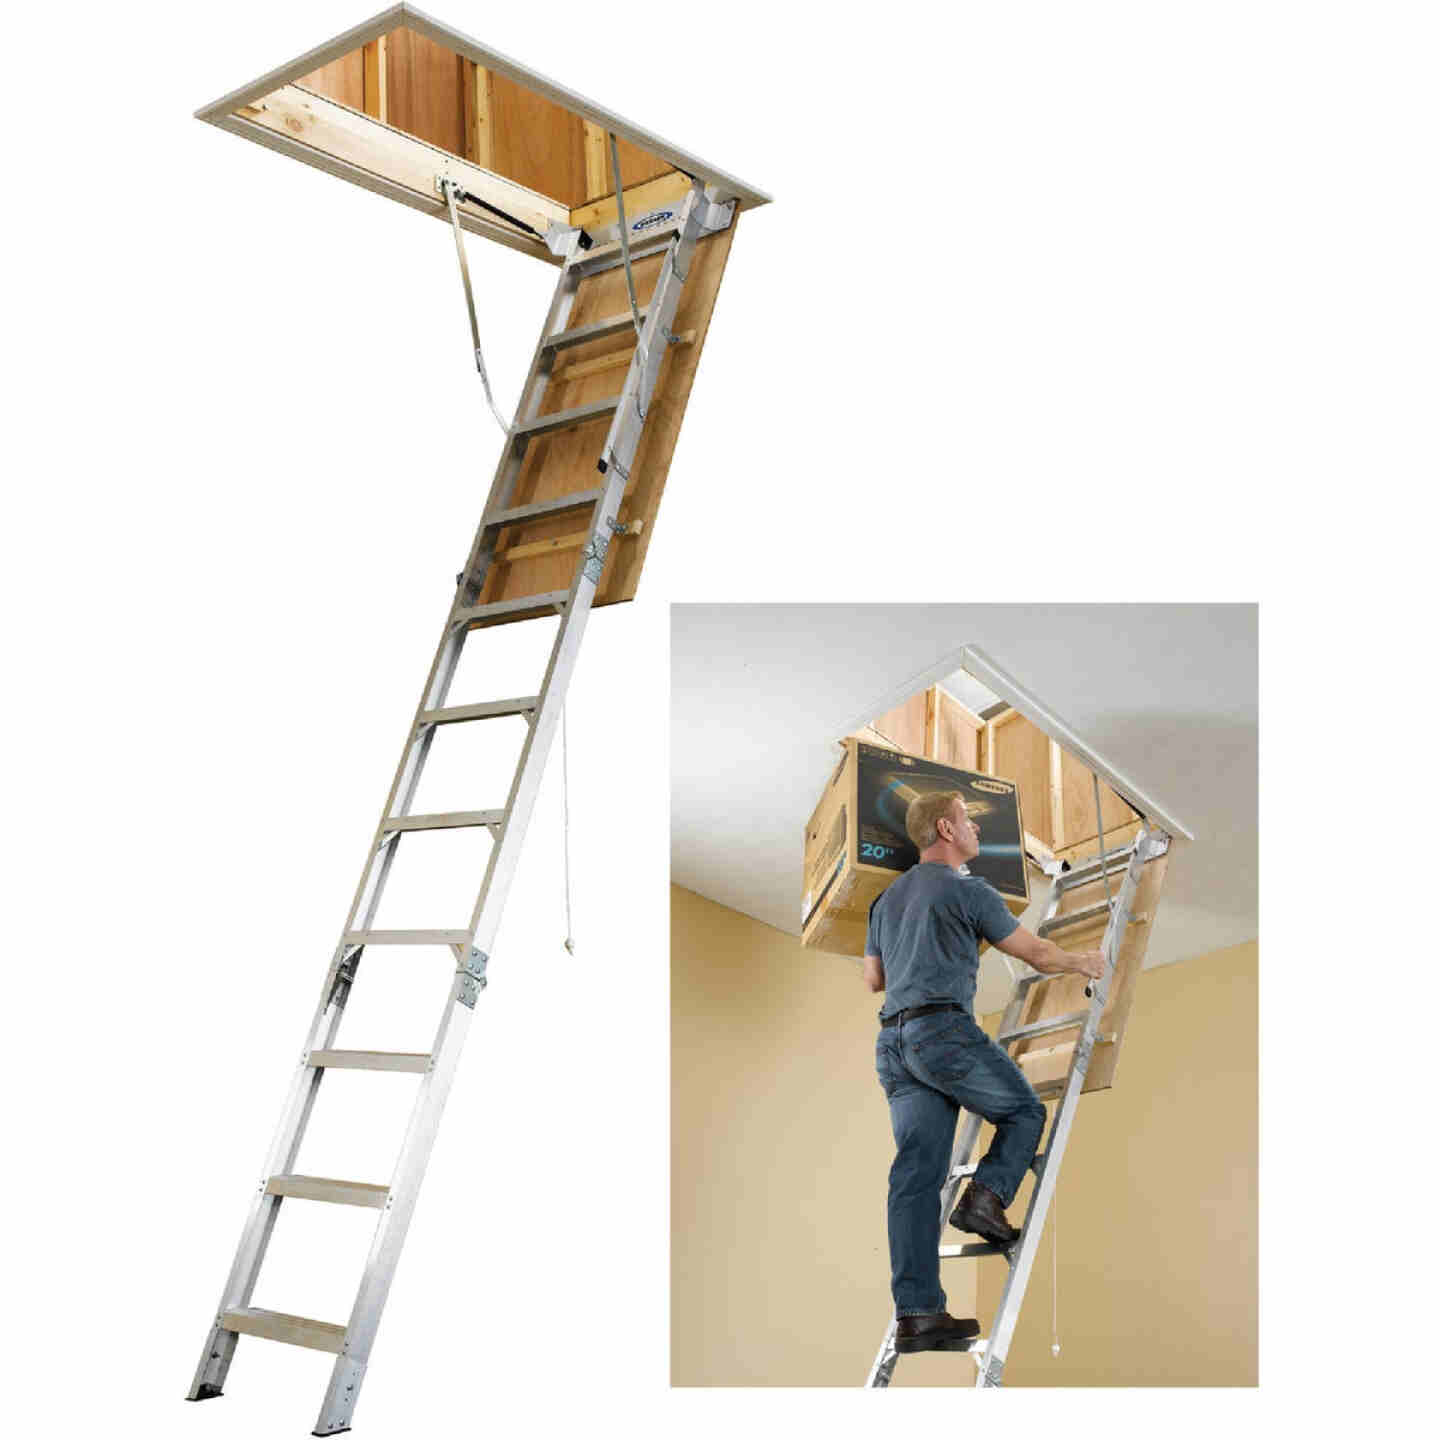 Werner Universal 8 Ft. to 10 Ft. 25 In. x 54 In. Aluminum Attic Stairs, 375 Lb. Load Image 1